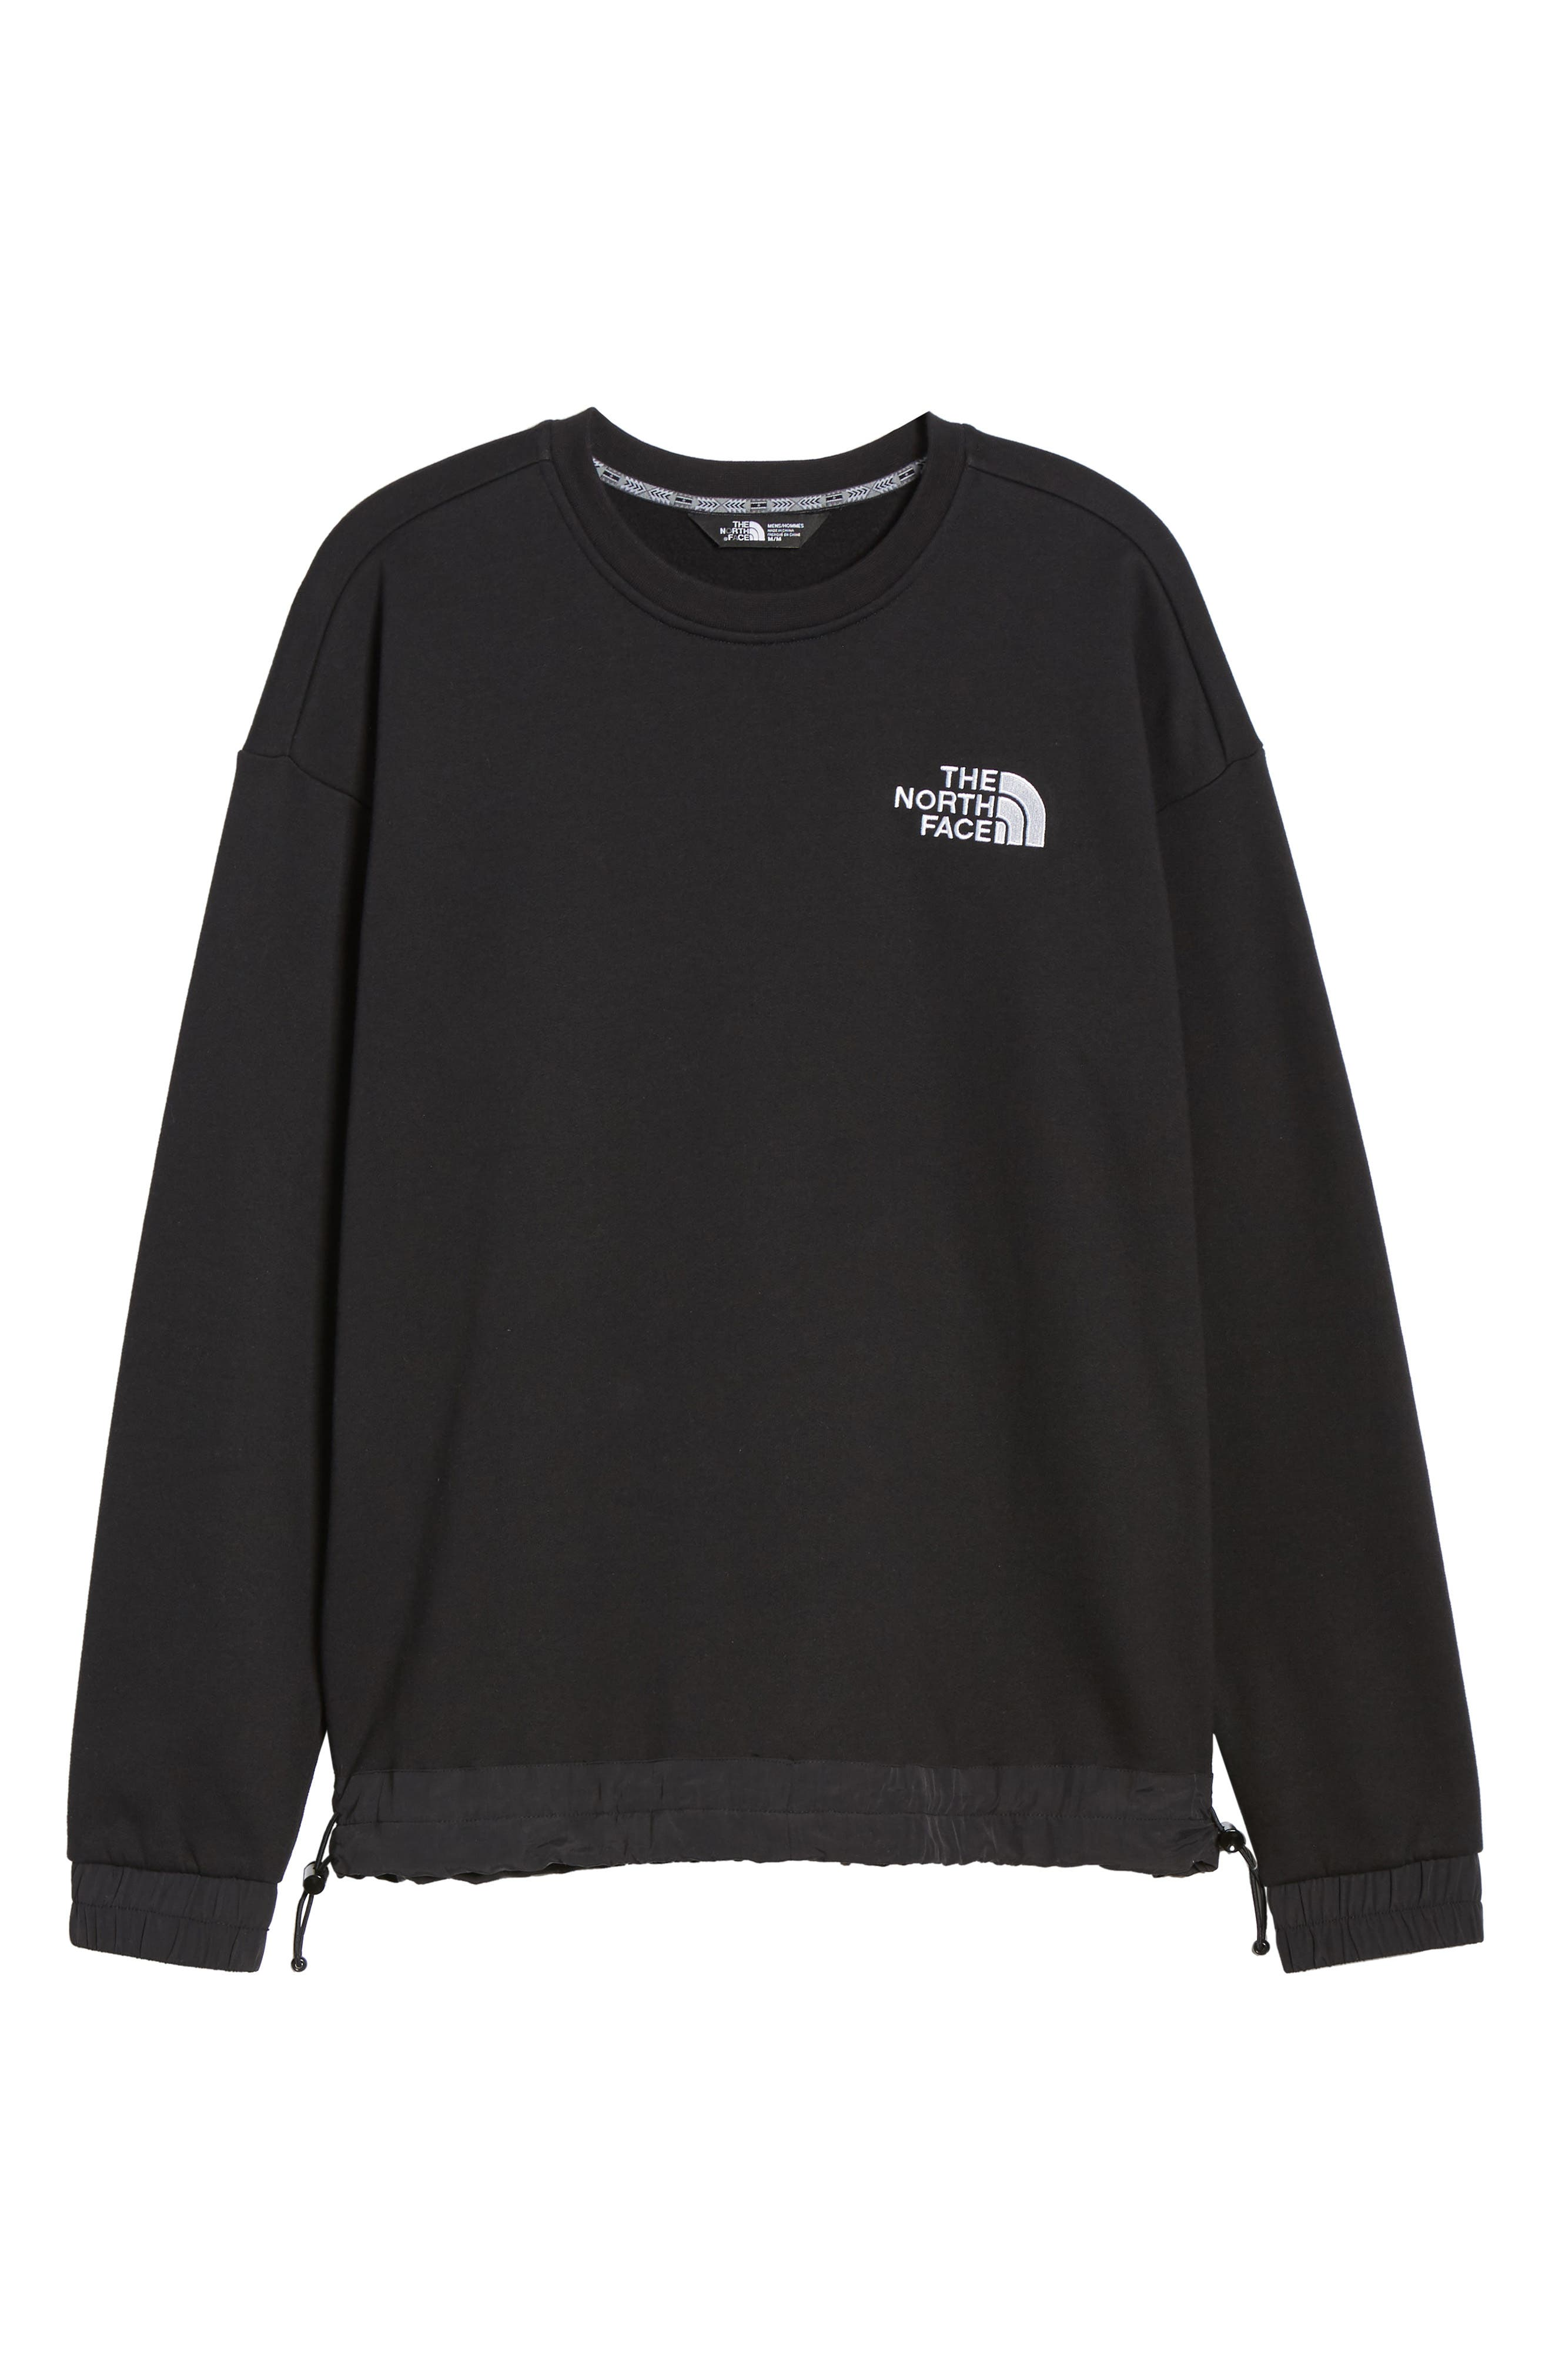 THE NORTH FACE, 1992 Rage Collection Sweatshirt, Alternate thumbnail 6, color, 001